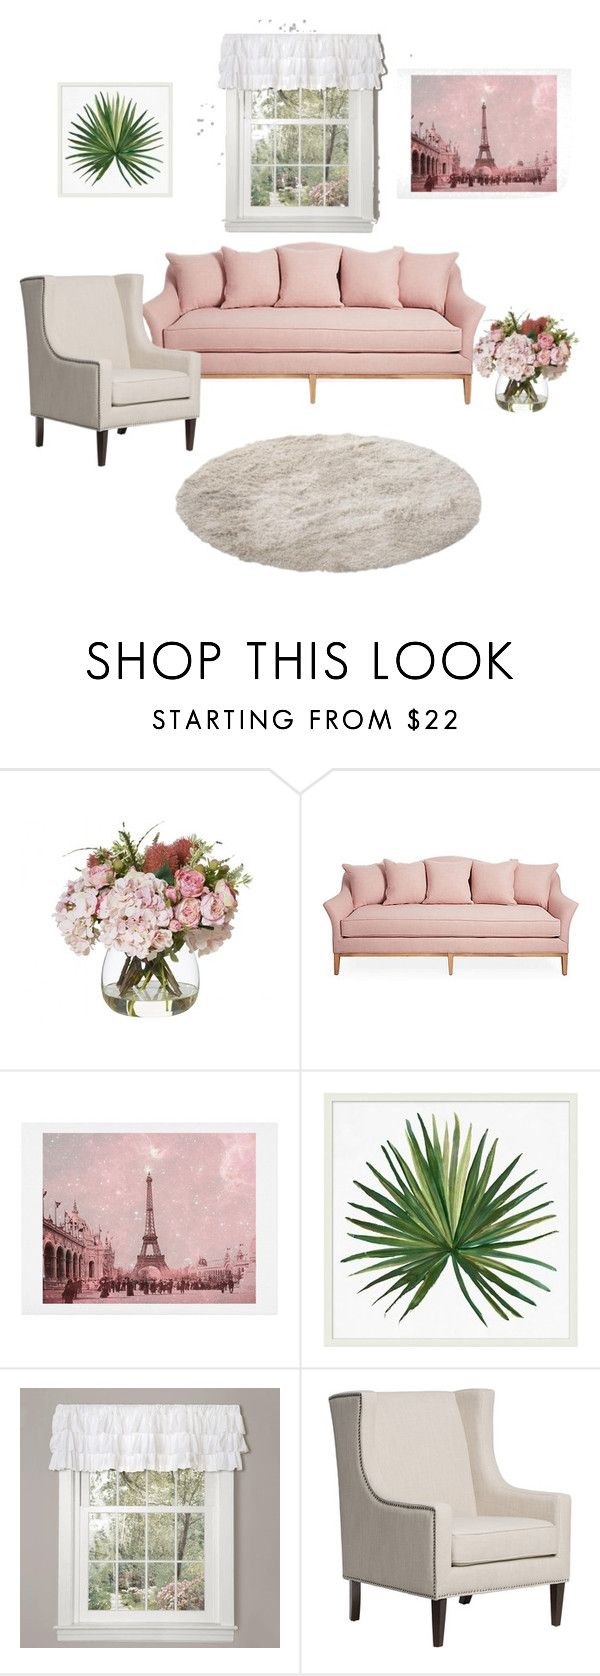 """""""Untitled #74"""" by aysudamla ❤ liked on Polyvore featuring WALL, Pottery Barn and Lush Décor"""